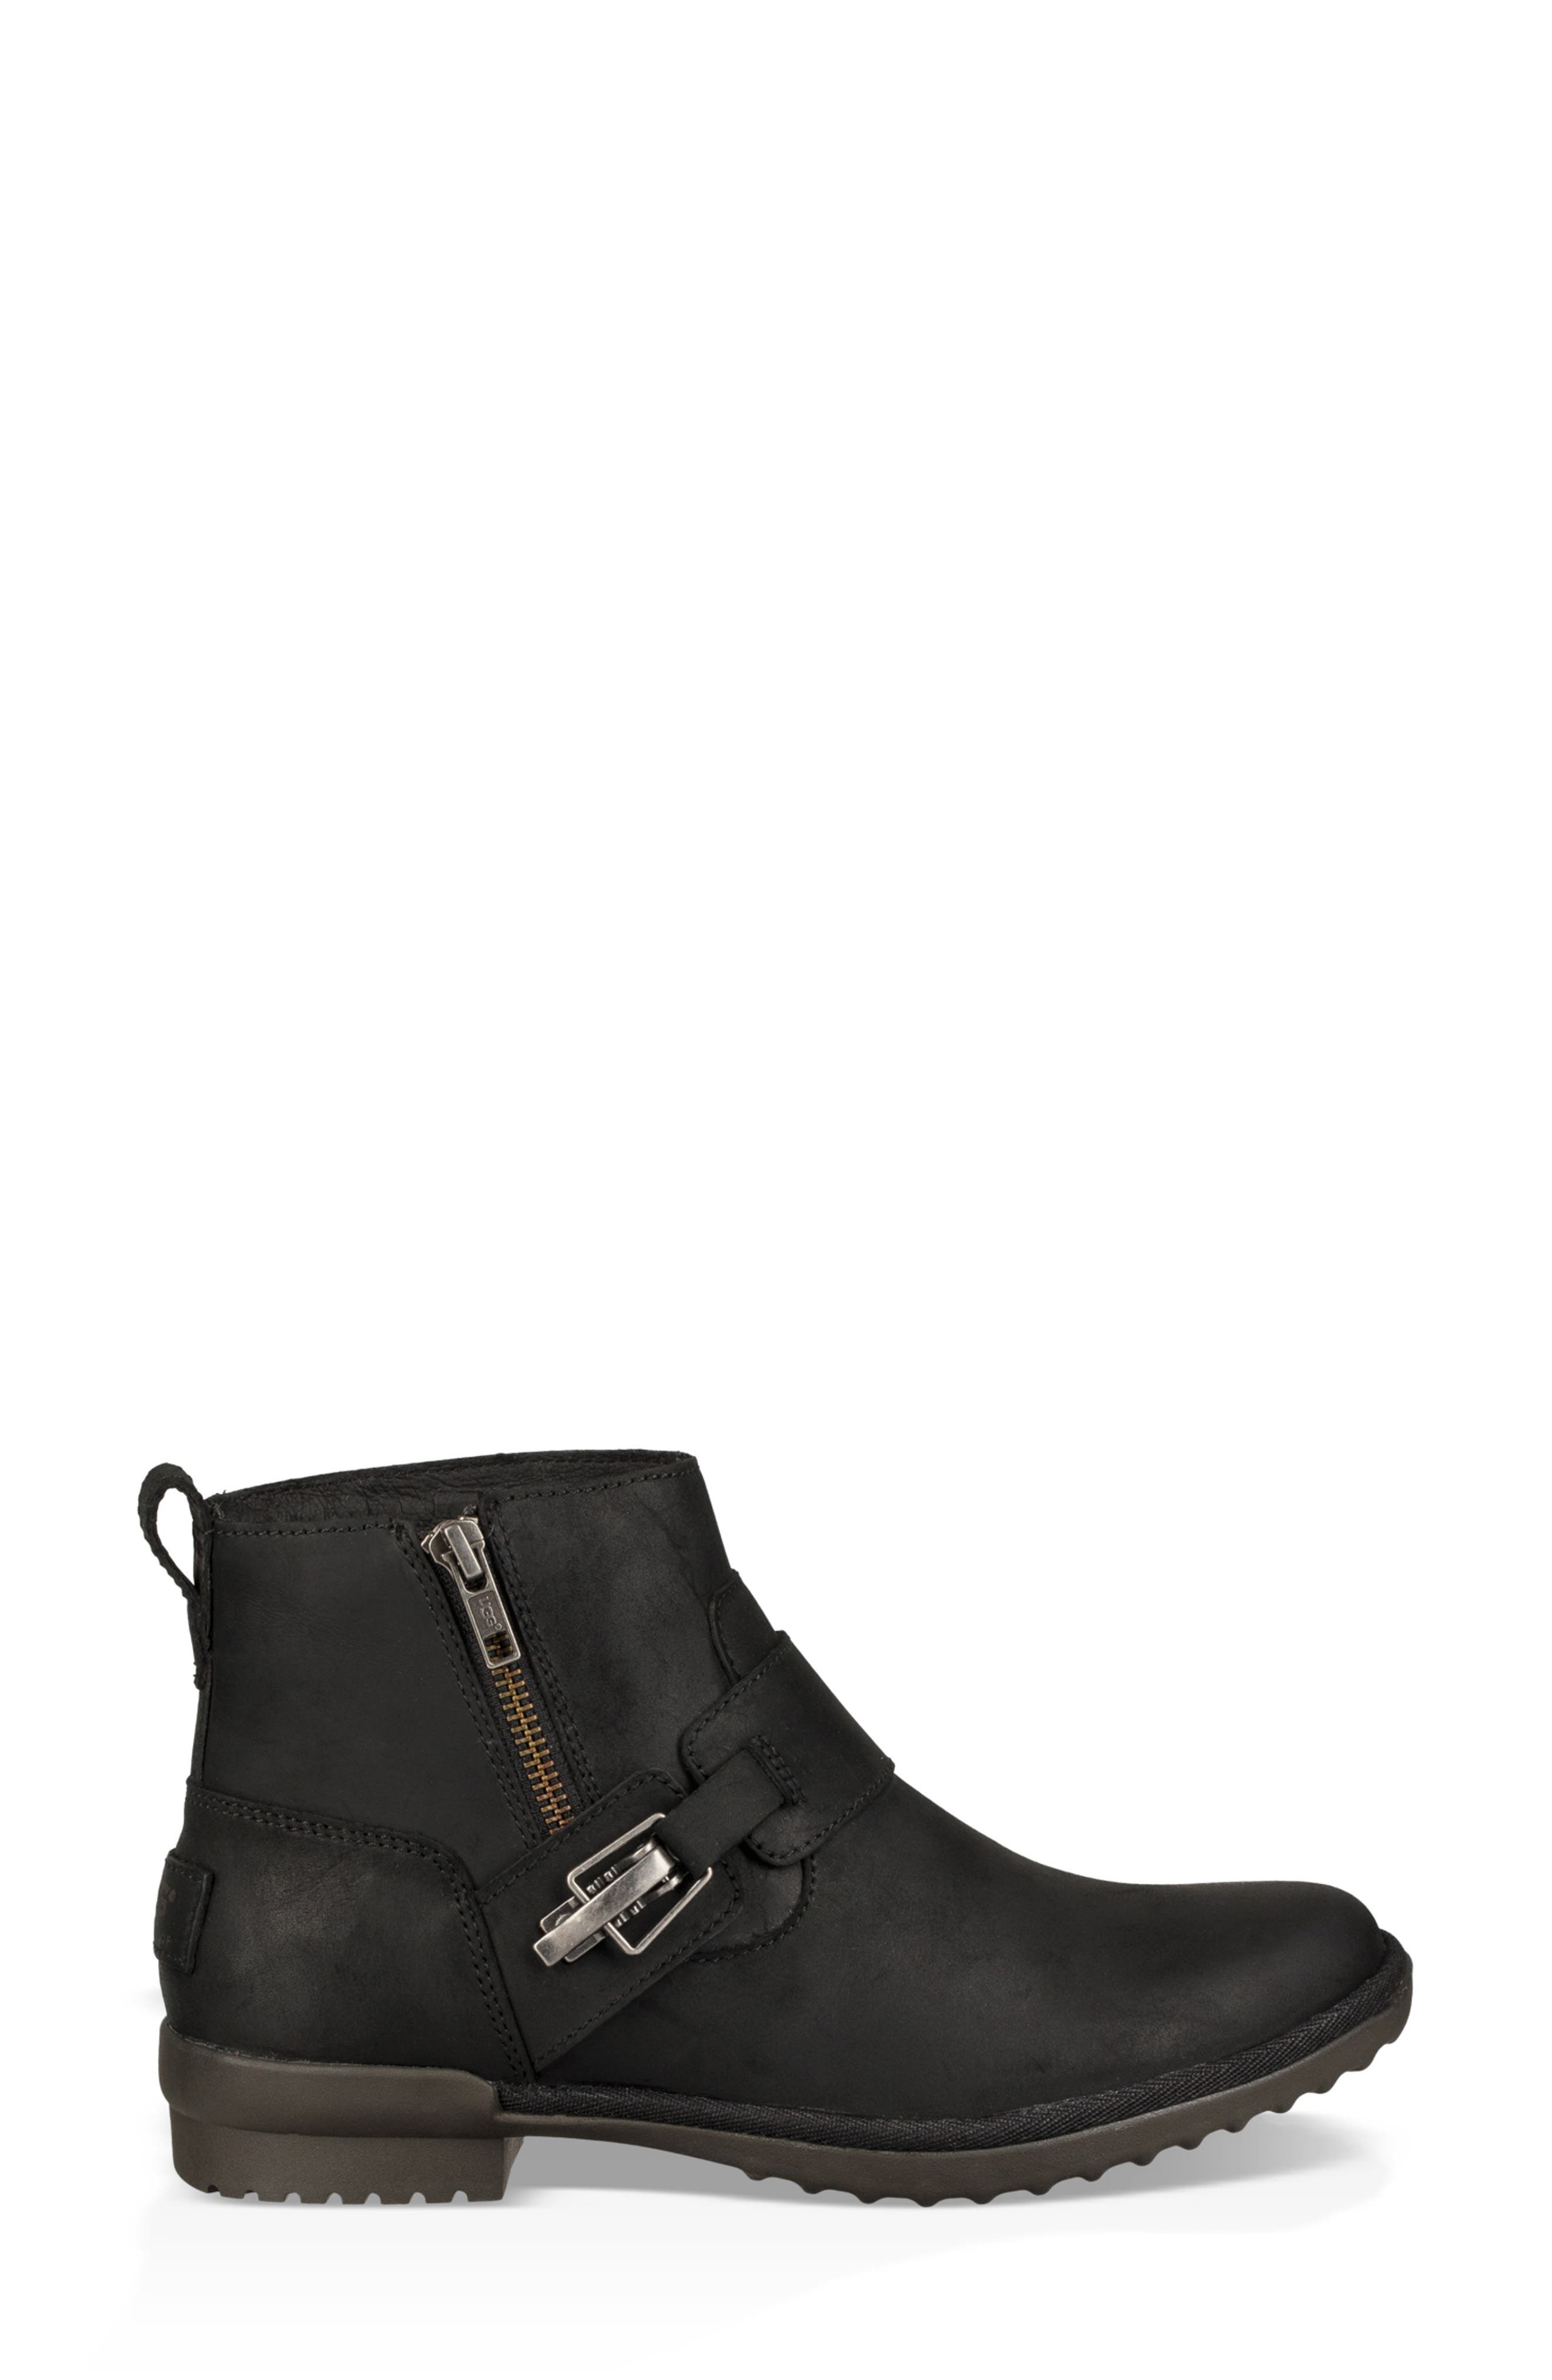 Cheyne Bootie,                             Alternate thumbnail 3, color,                             BLACK LEATHER